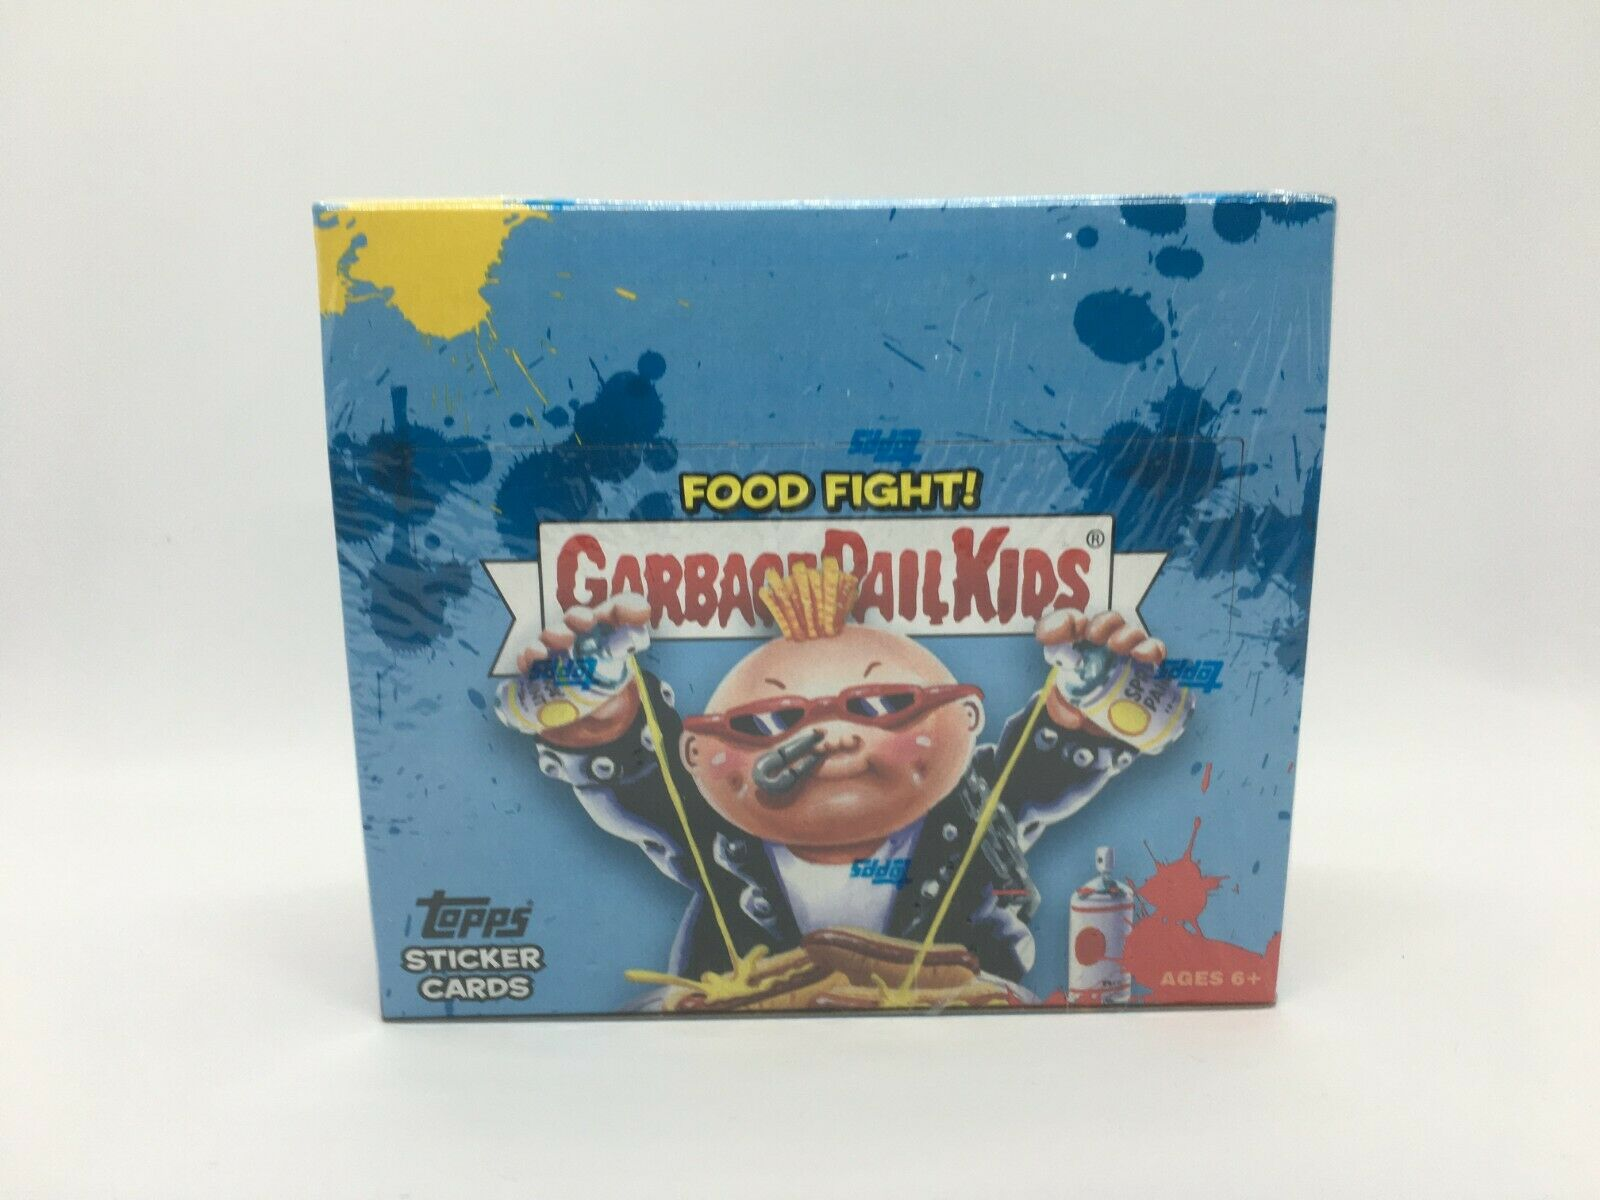 2021 Topps Garbage Pail Kids Food Fight! Hobby Box